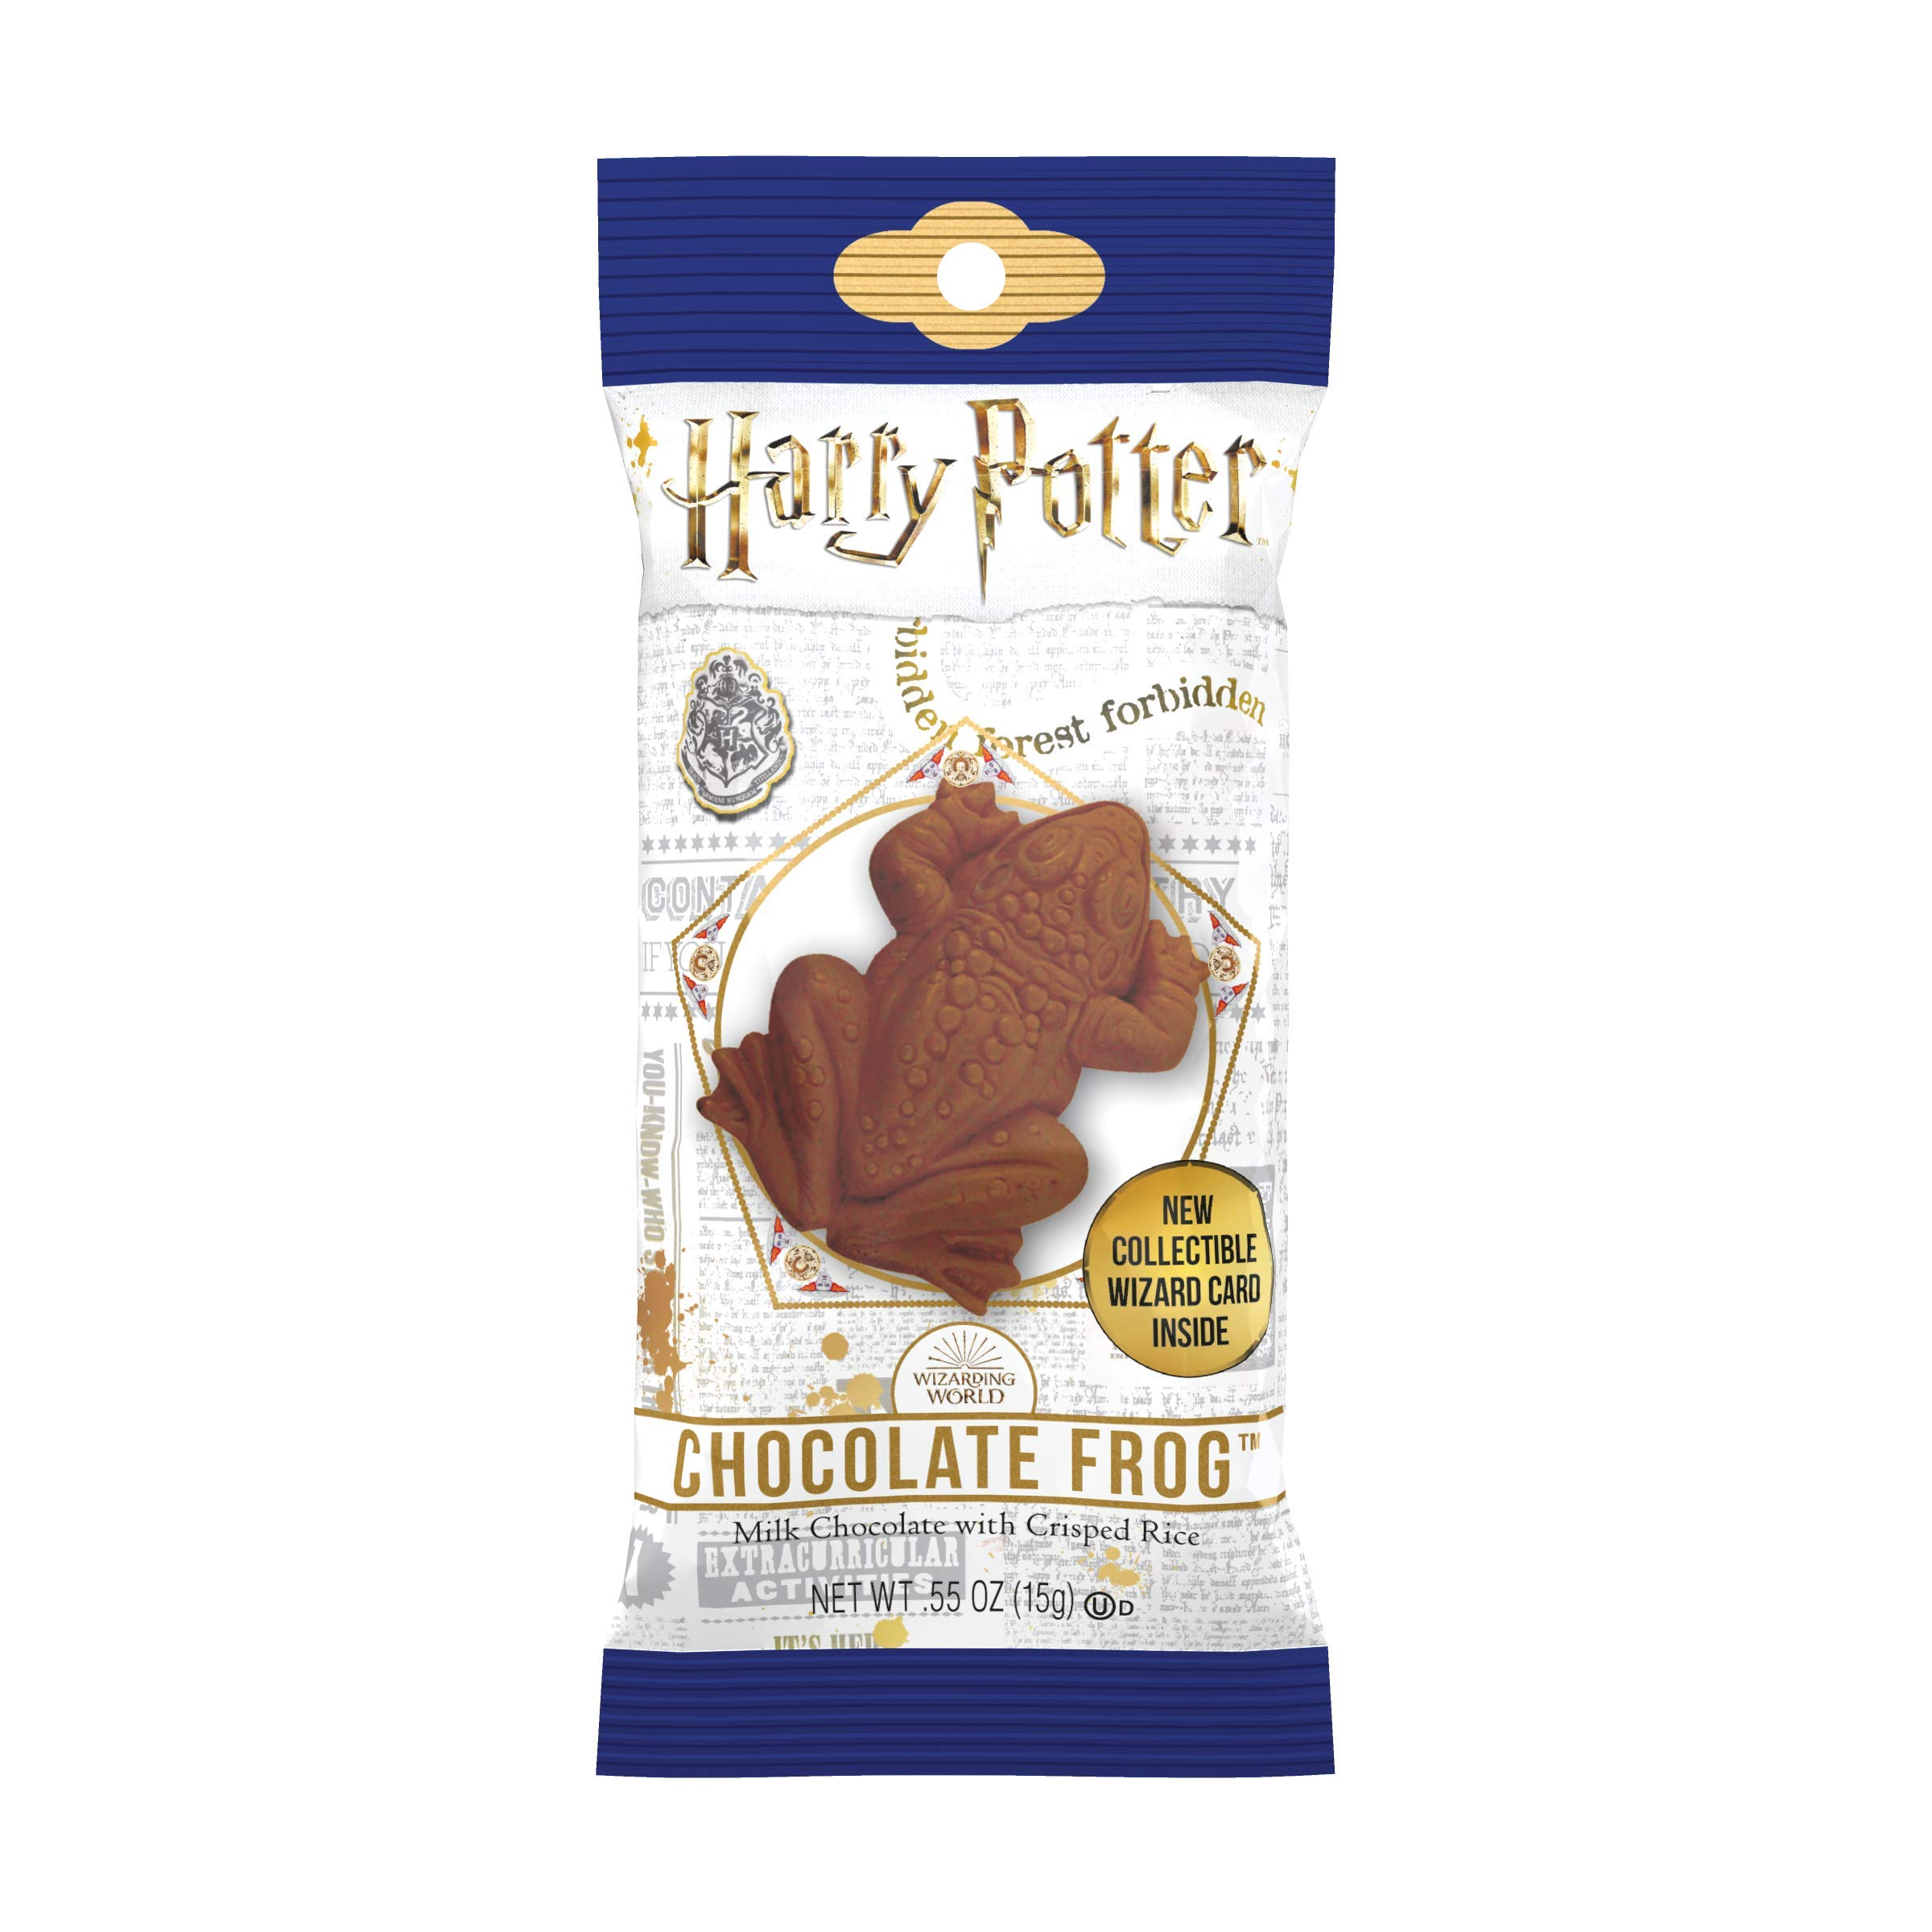 Jelly Belly Harry Potter Chocolate Frog, 0.55-oz, 24 Pack by Jelly Belly (Image #1)